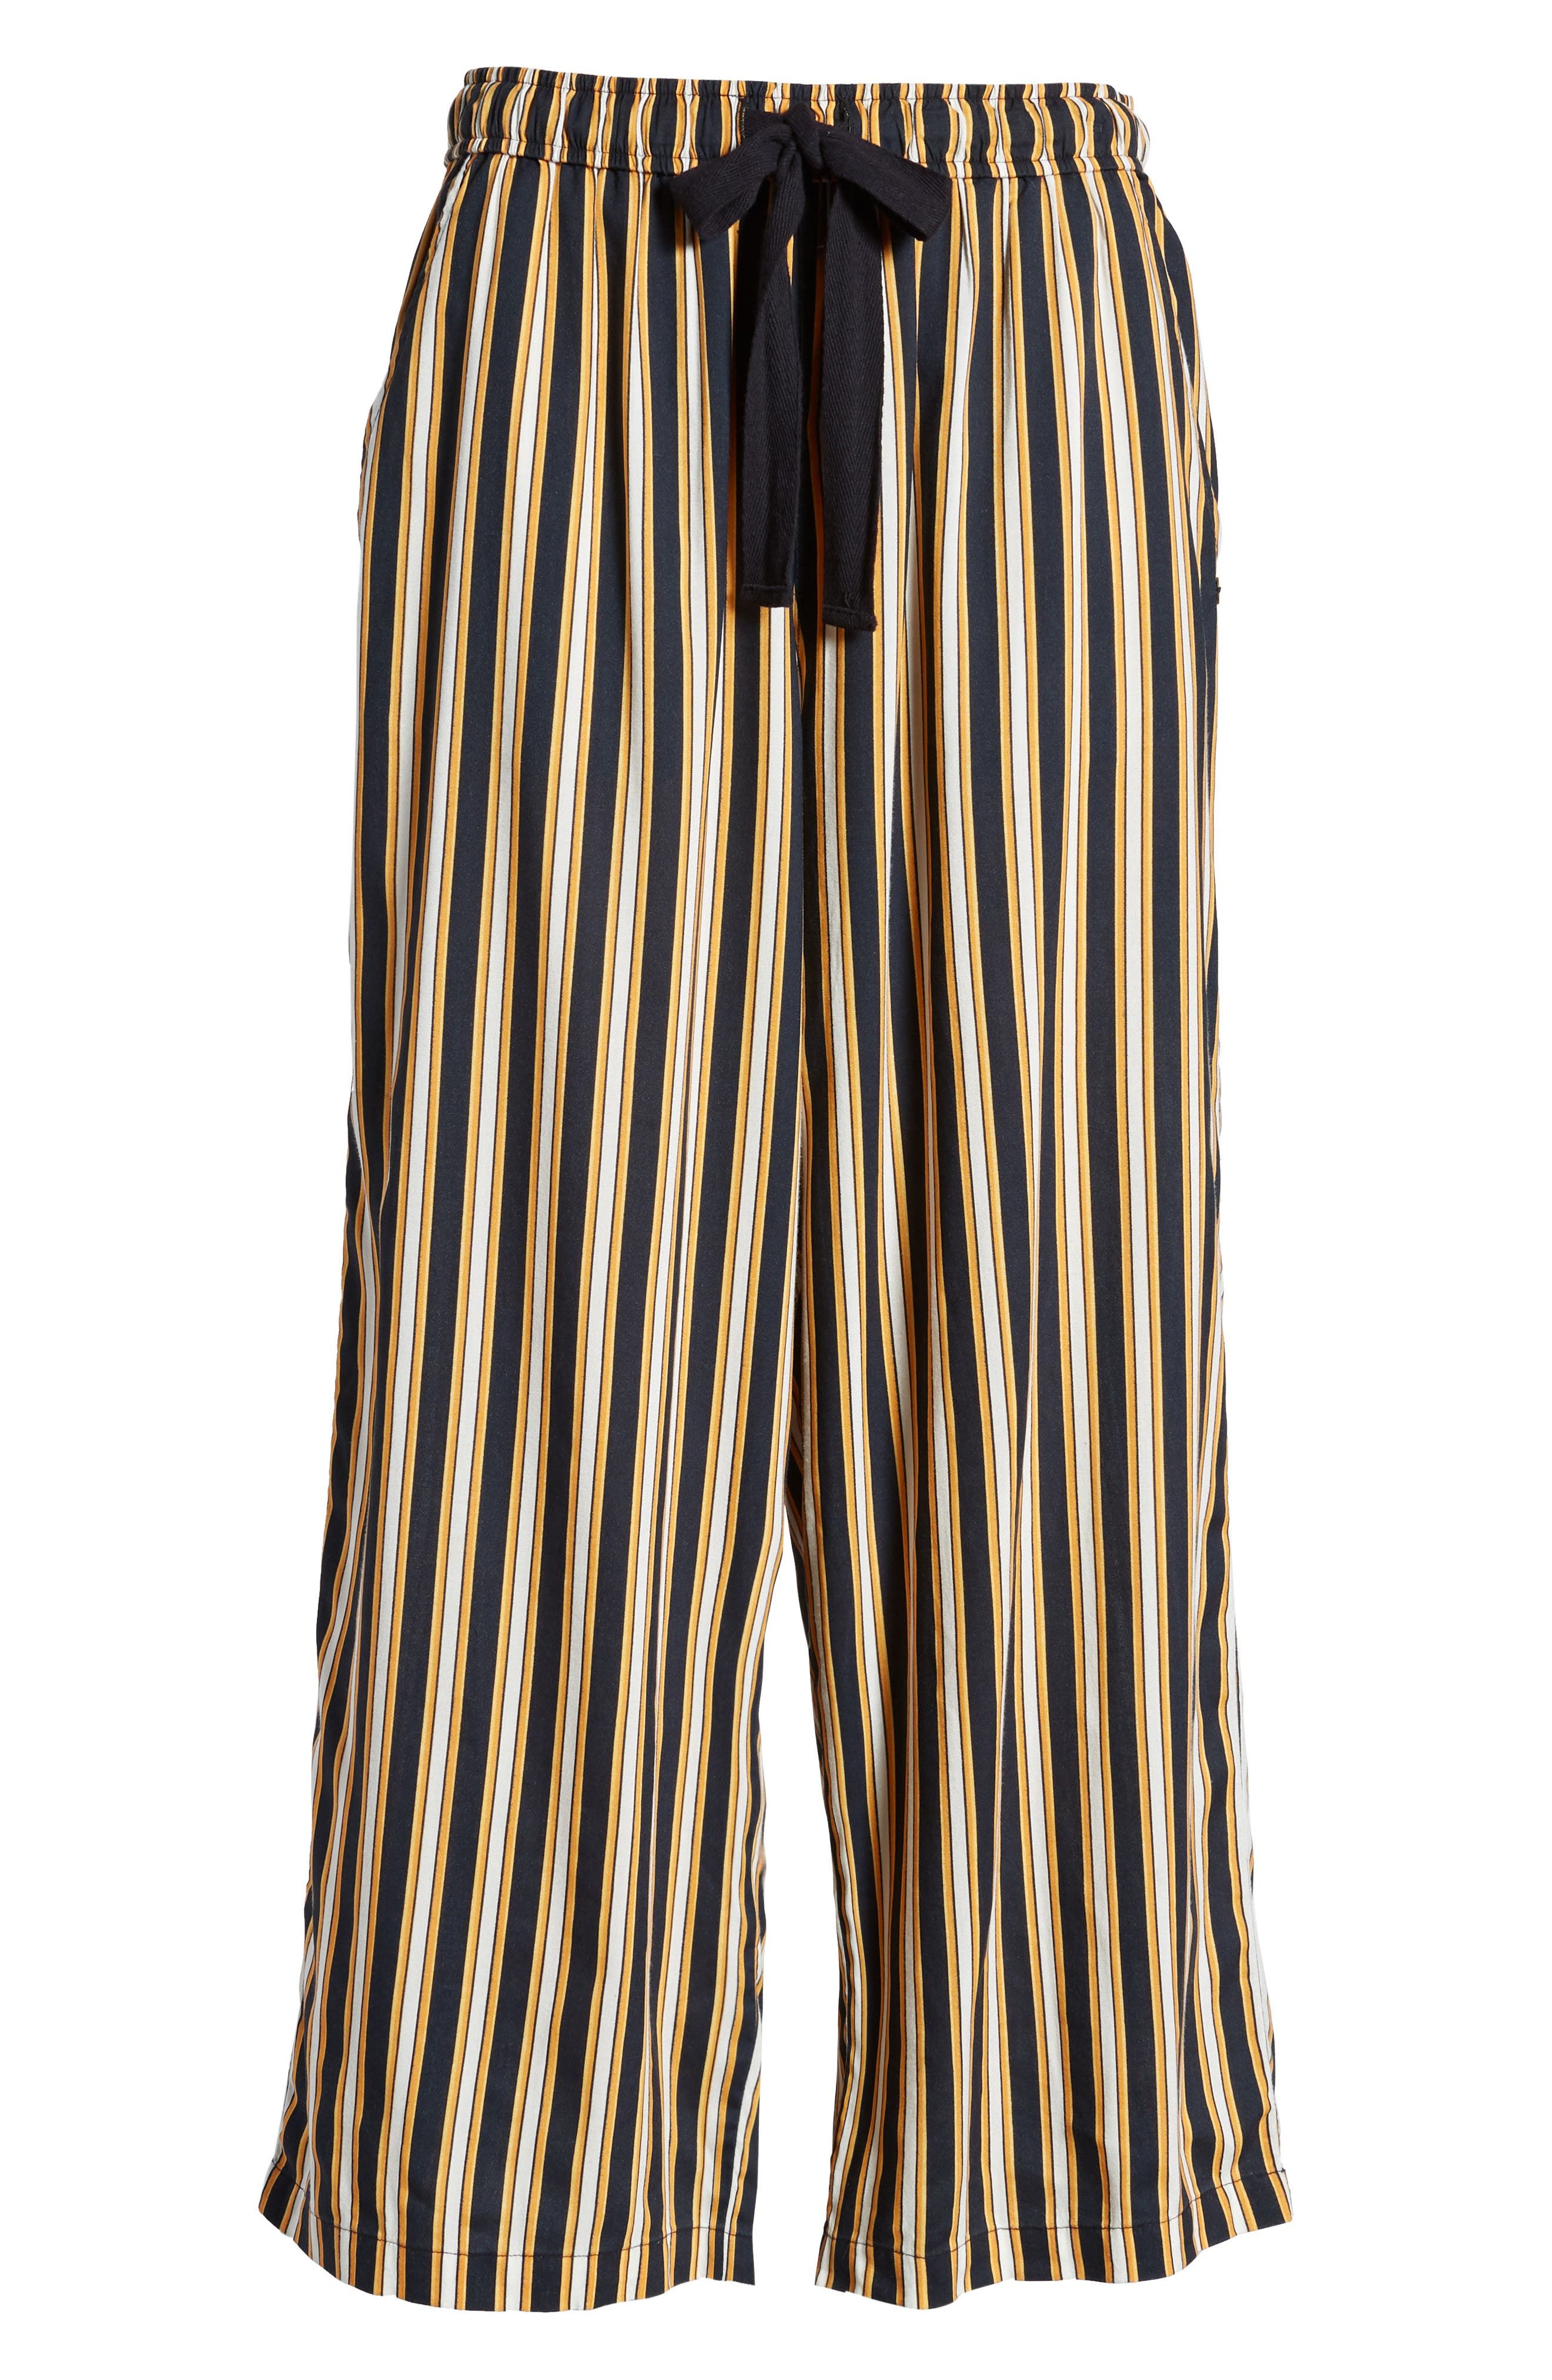 Stoney Stripe Pants,                             Alternate thumbnail 6, color,                             414